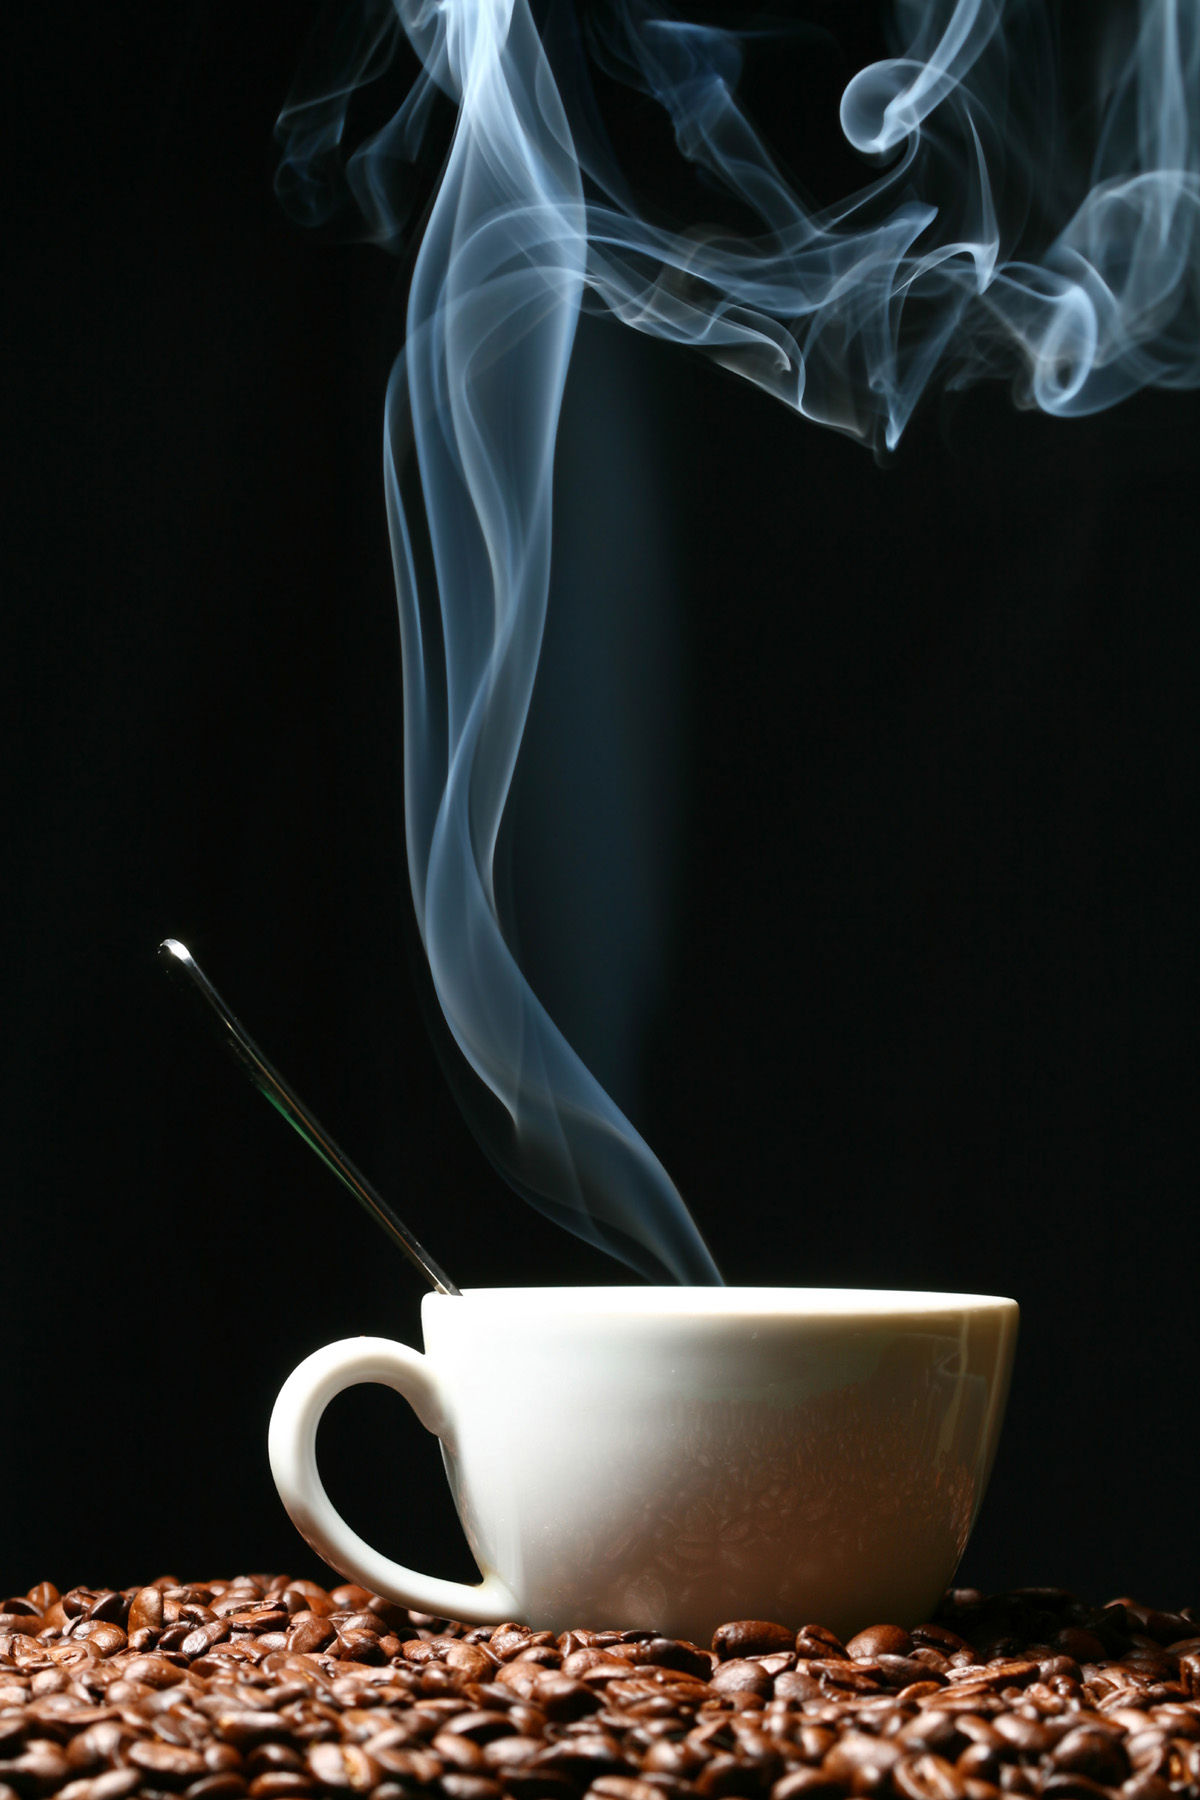 Hot coffee 18565